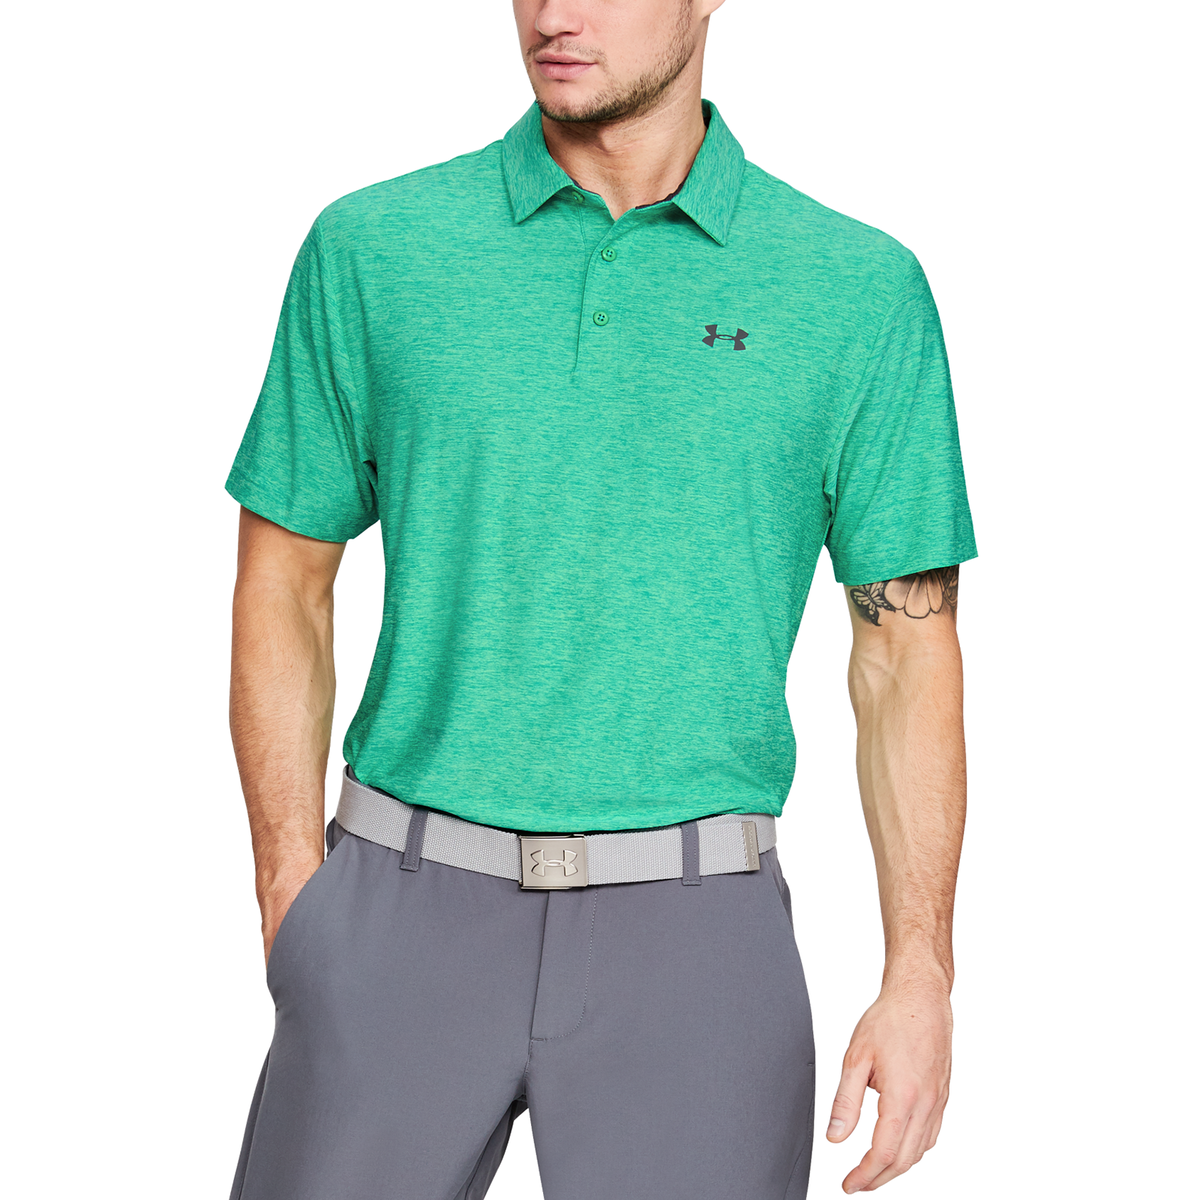 9575f97f Under Armour Golf Shirts Loose Fit